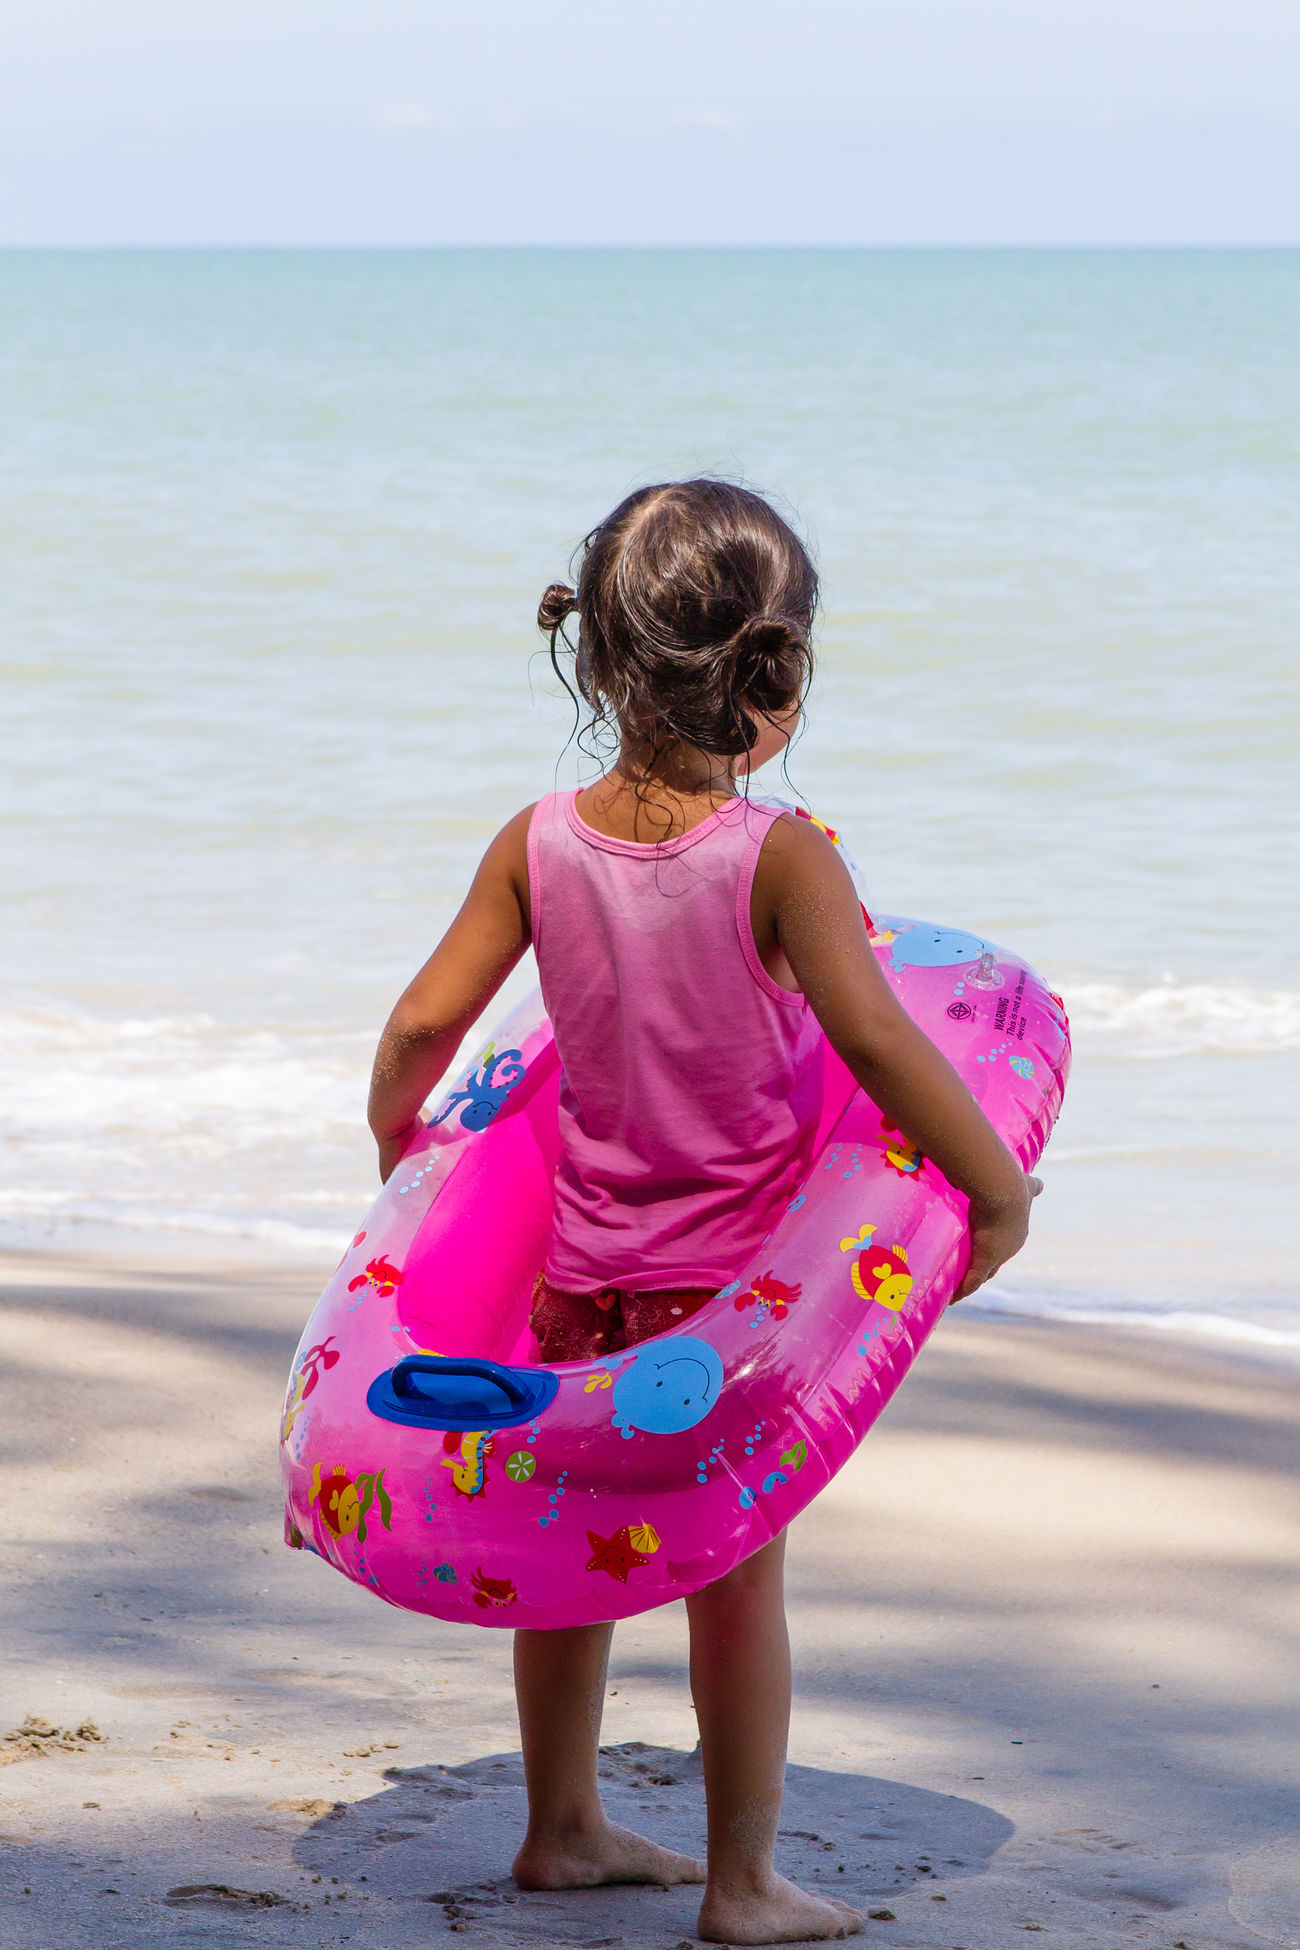 Little girl, big ocean Beach Beach Photography Beach Time Childhood Chilling Float From Behind Girl Horizon Over Water Looking Away Looking Out To Sea. Prepared Sea Take On The World Water Anticipation Waiting Ready Ready To Go